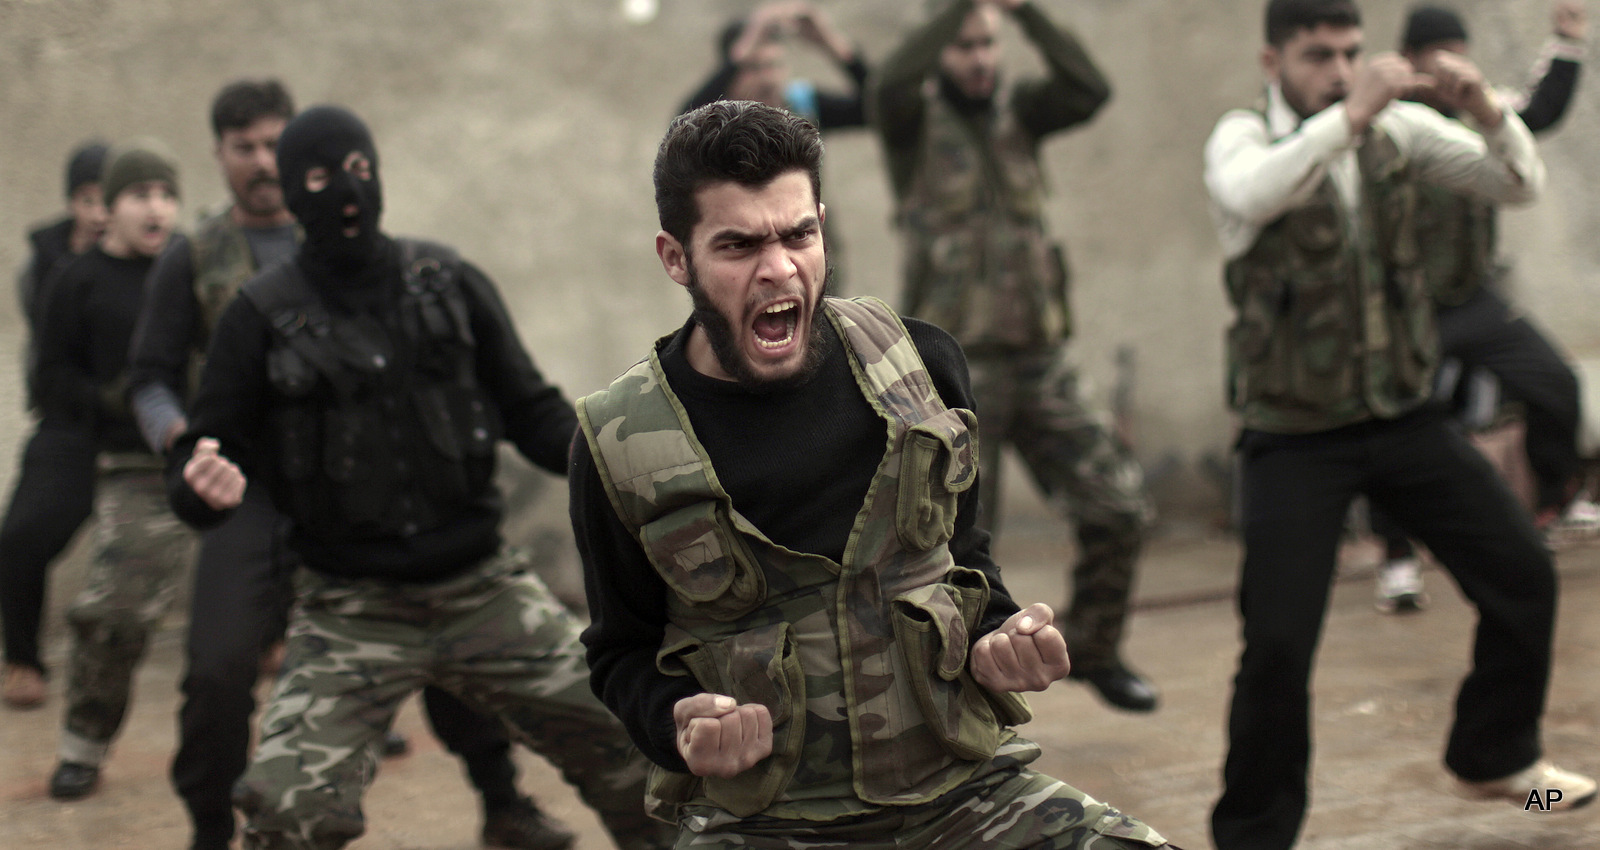 Syrian rebels attend a training session in Maaret Ikhwan near Idlib, Syria.